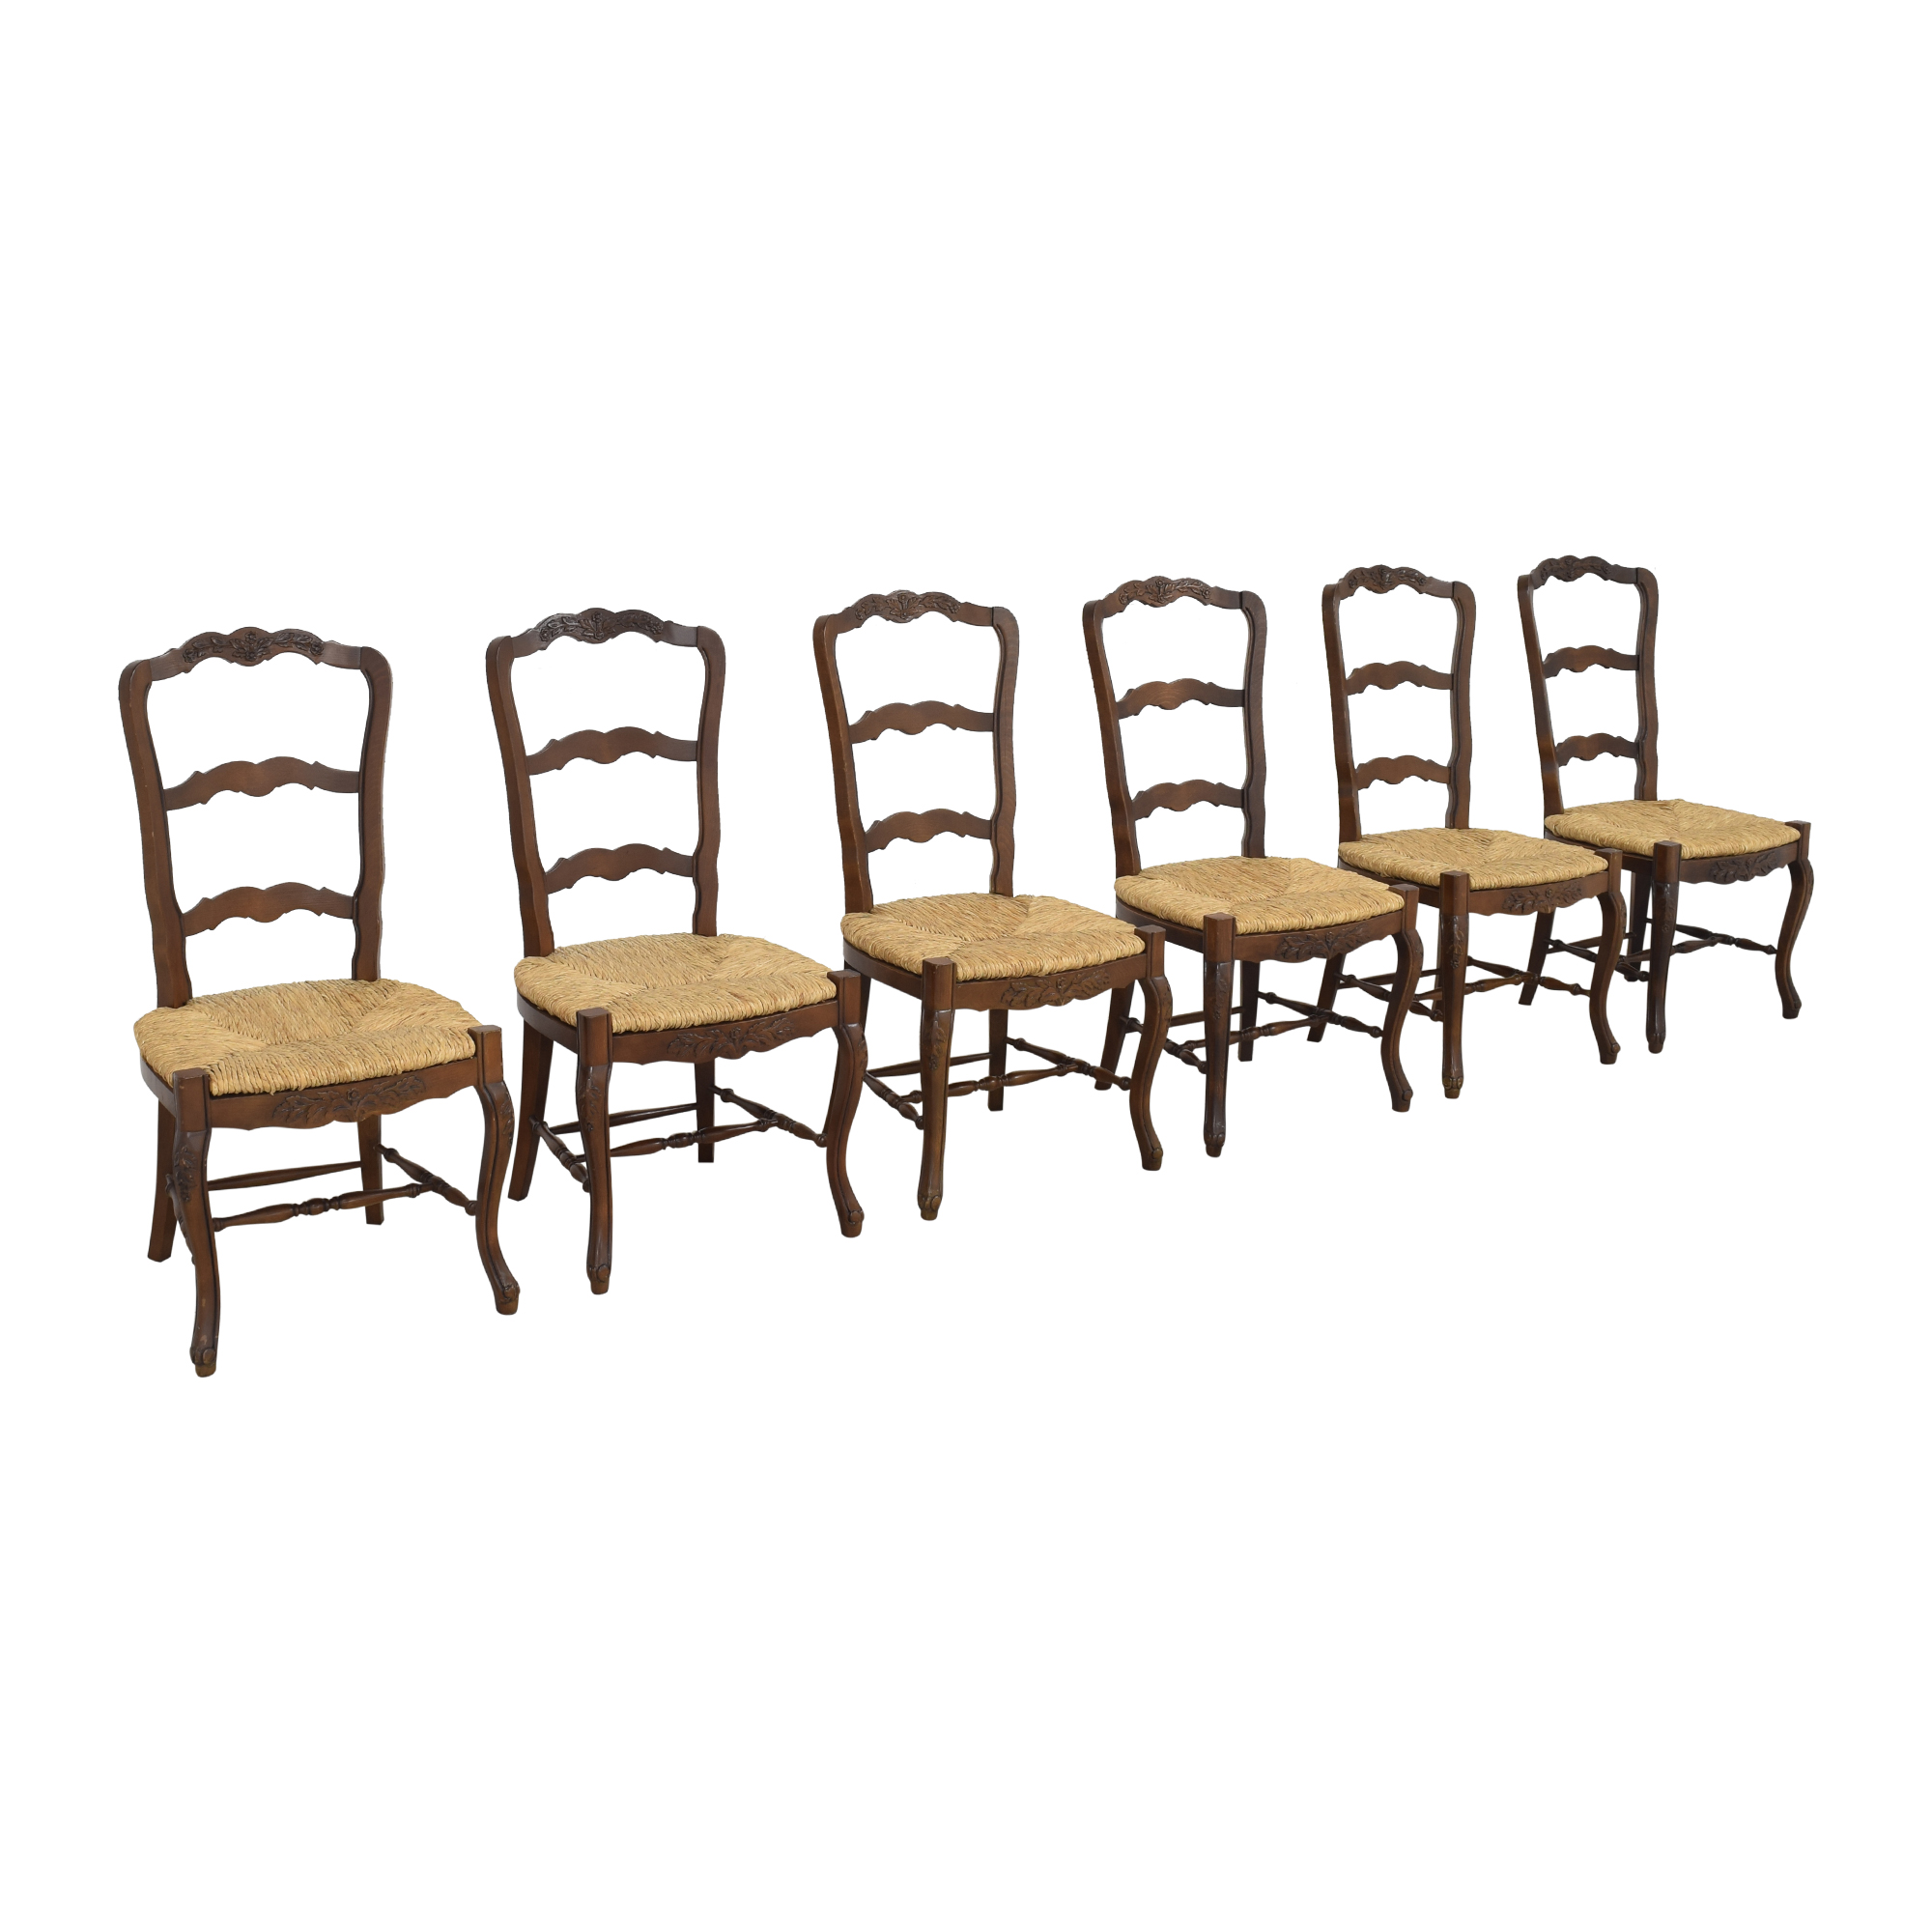 French-Style Ladderback Dining Chairs / Dining Chairs